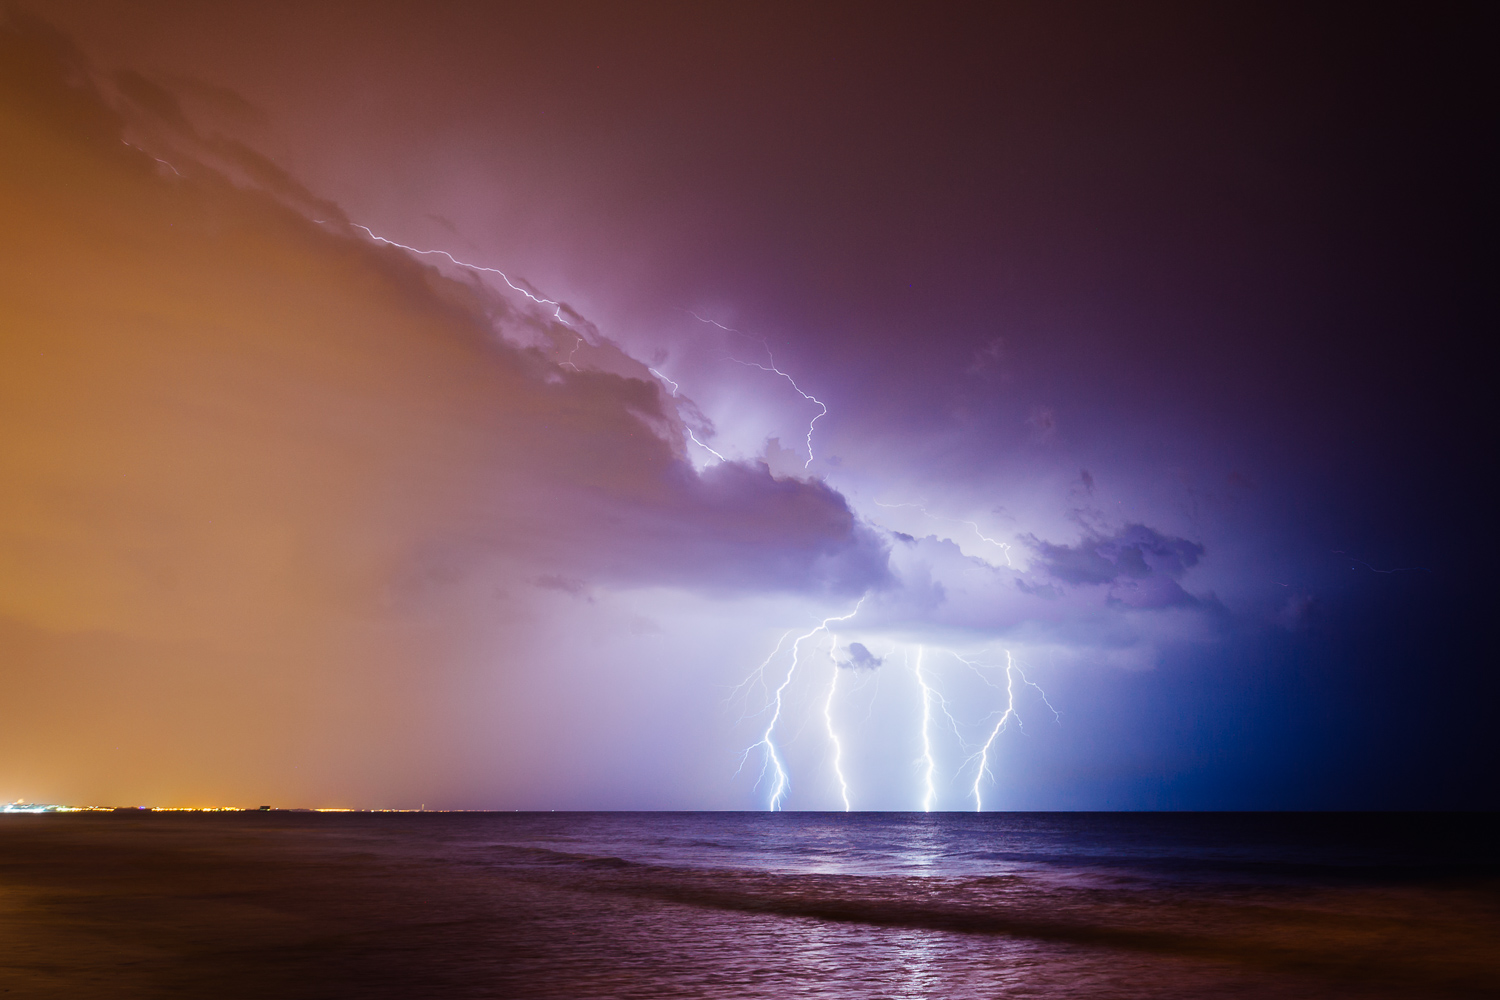 Lightning-Night-Clouds-Durazo-Photography-Project-Travel.jpg